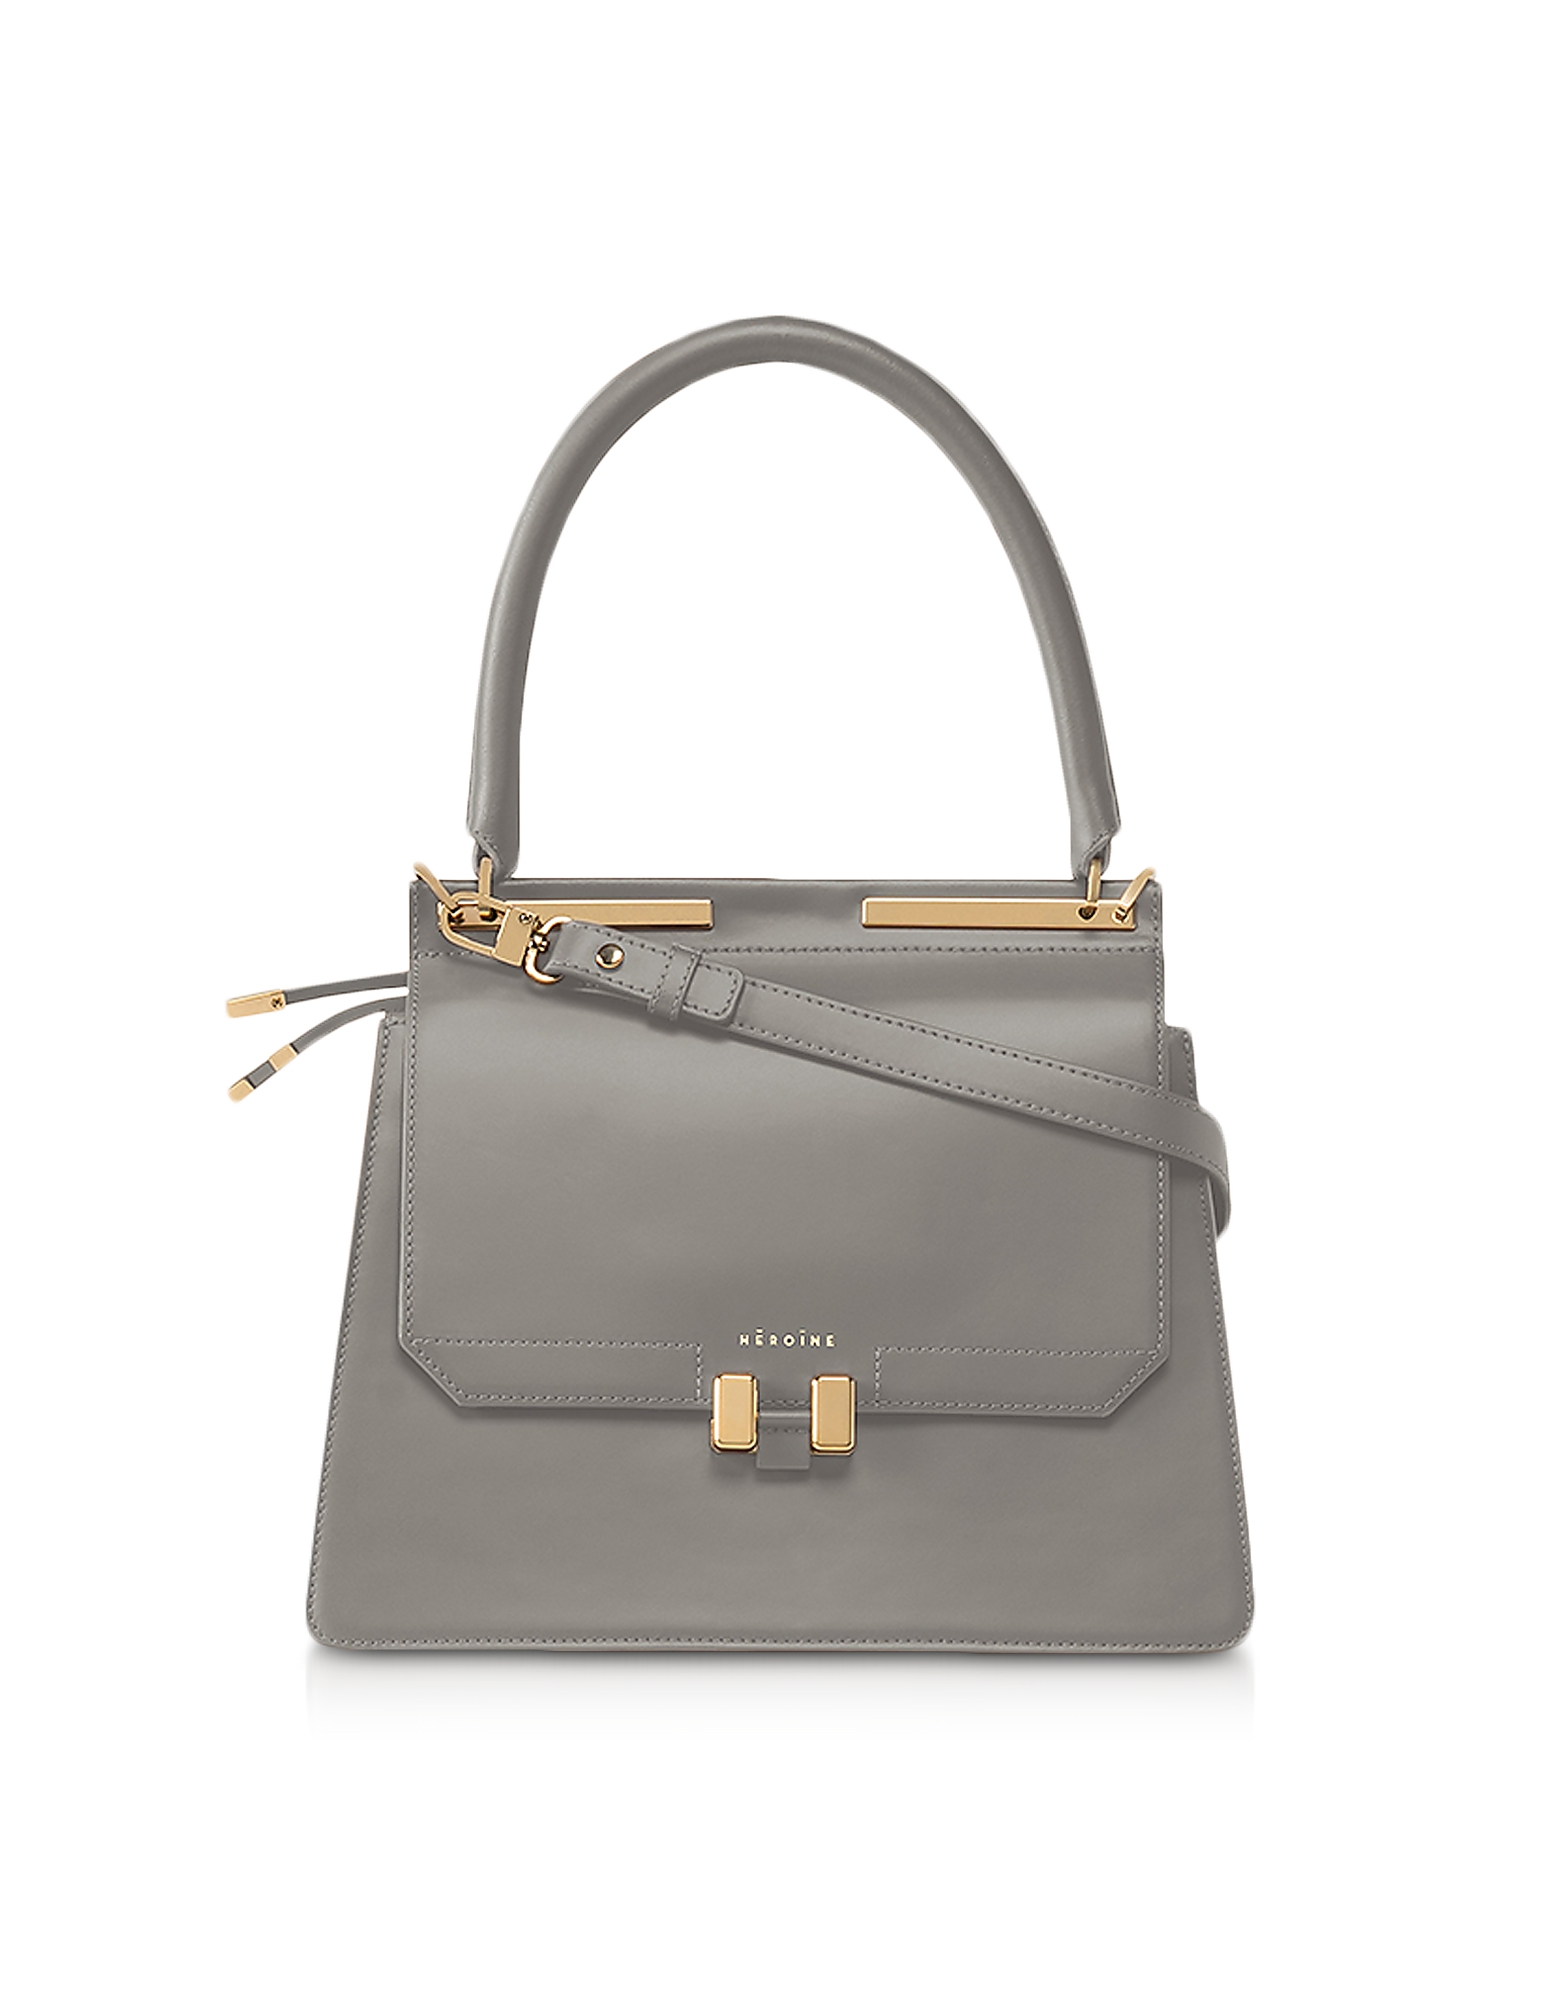 Maison Héroïne Handbags, Marlene Tablet Satchel Bag